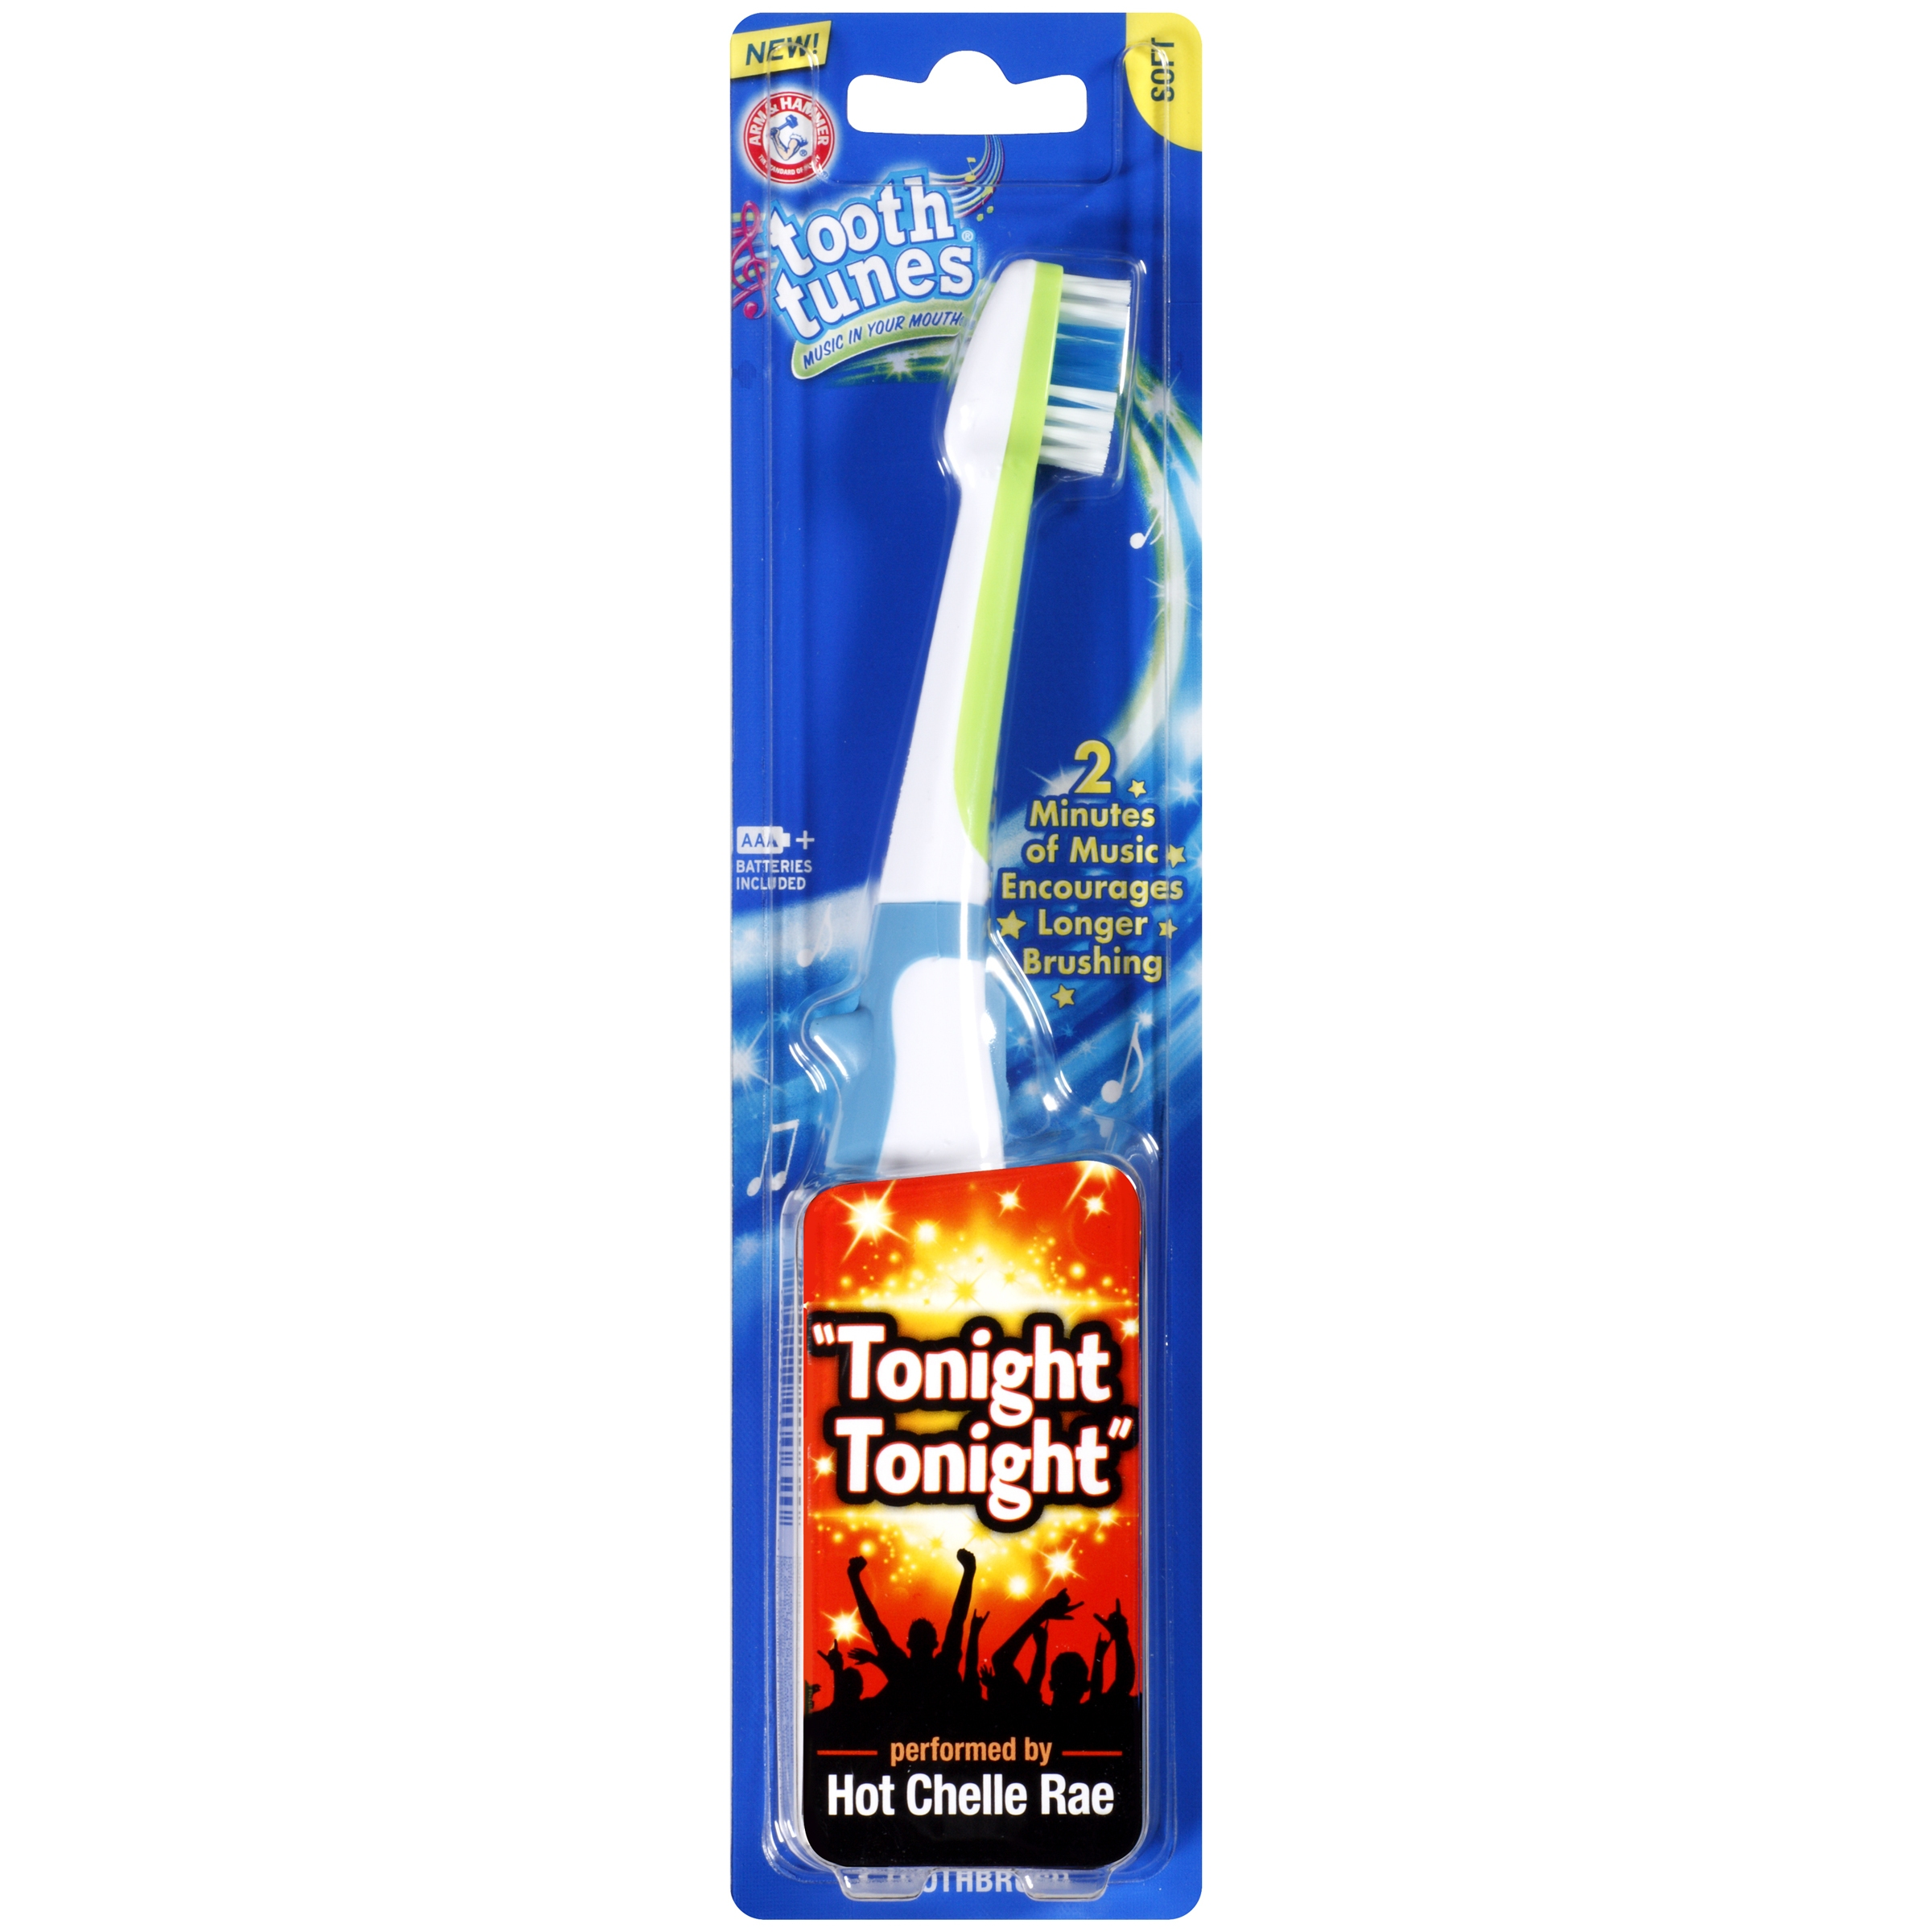 Arm & Hammer™ Tooth Tunes™ Soft Toothbrush